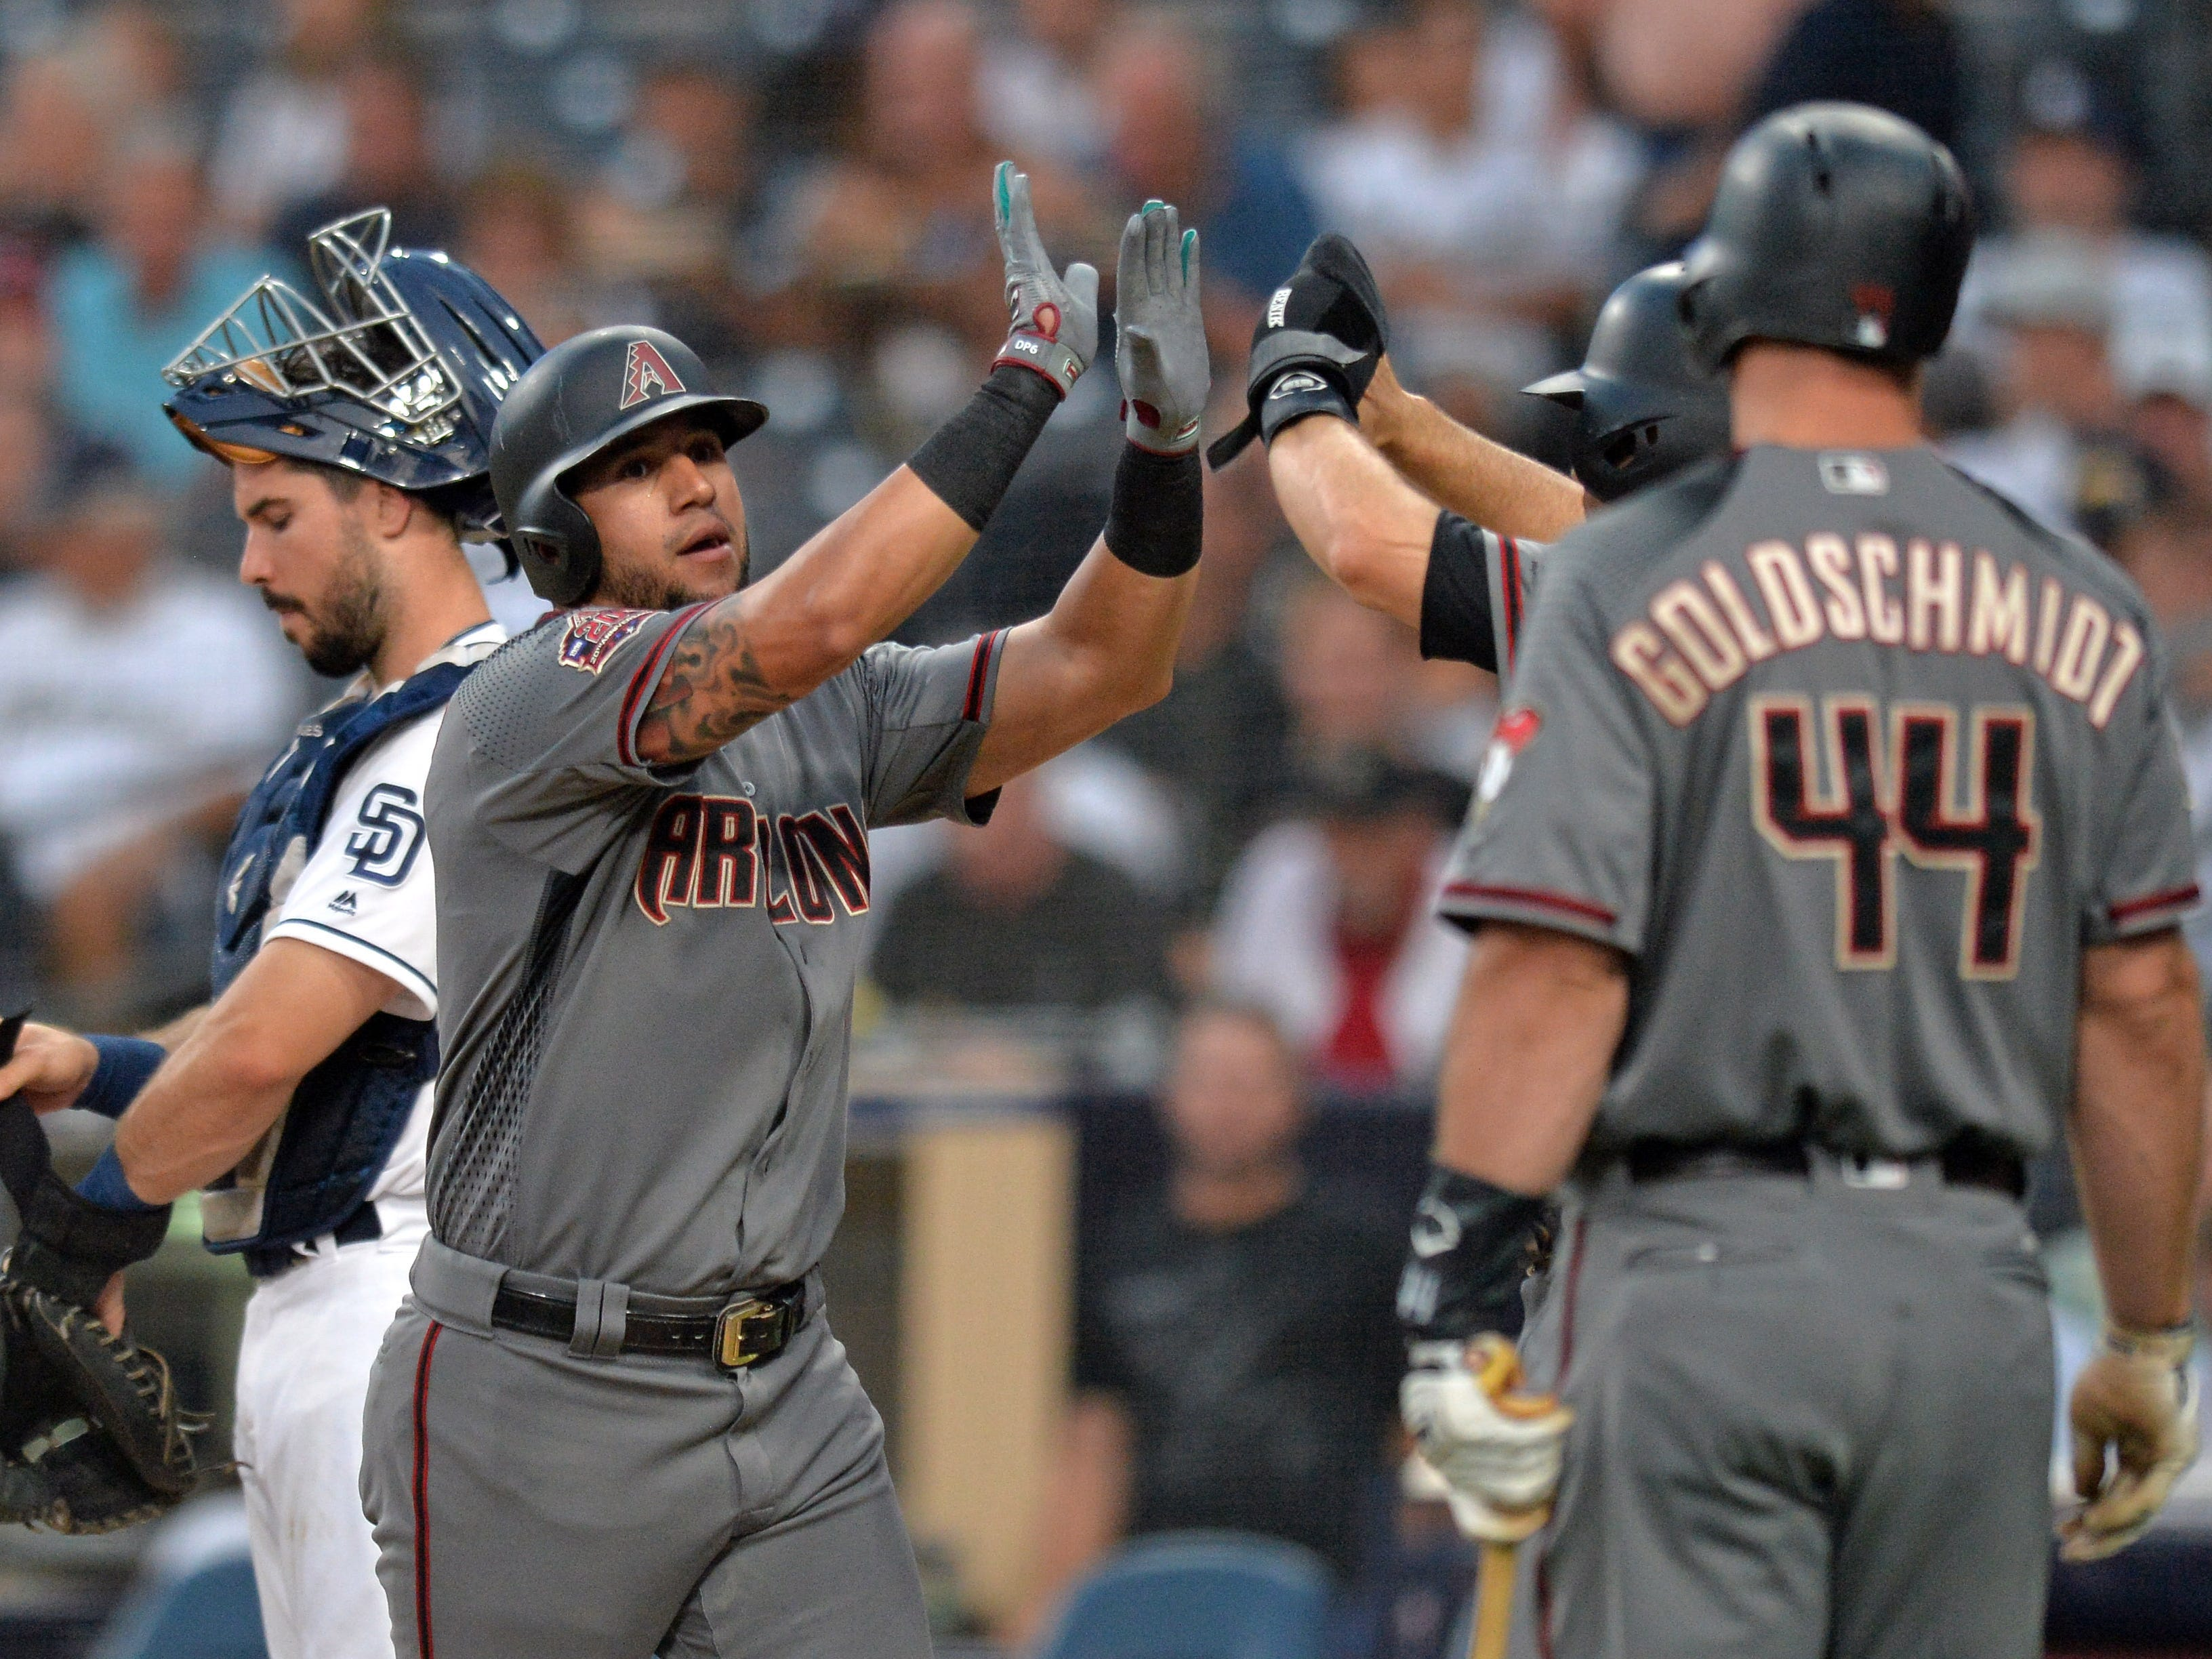 Aug 16, 2018; San Diego, CA, USA; Arizona Diamondbacks left fielder David Peralta (center) is congratulated after hitting a three run home run during the first inning against the San Diego Padres at Petco Park.